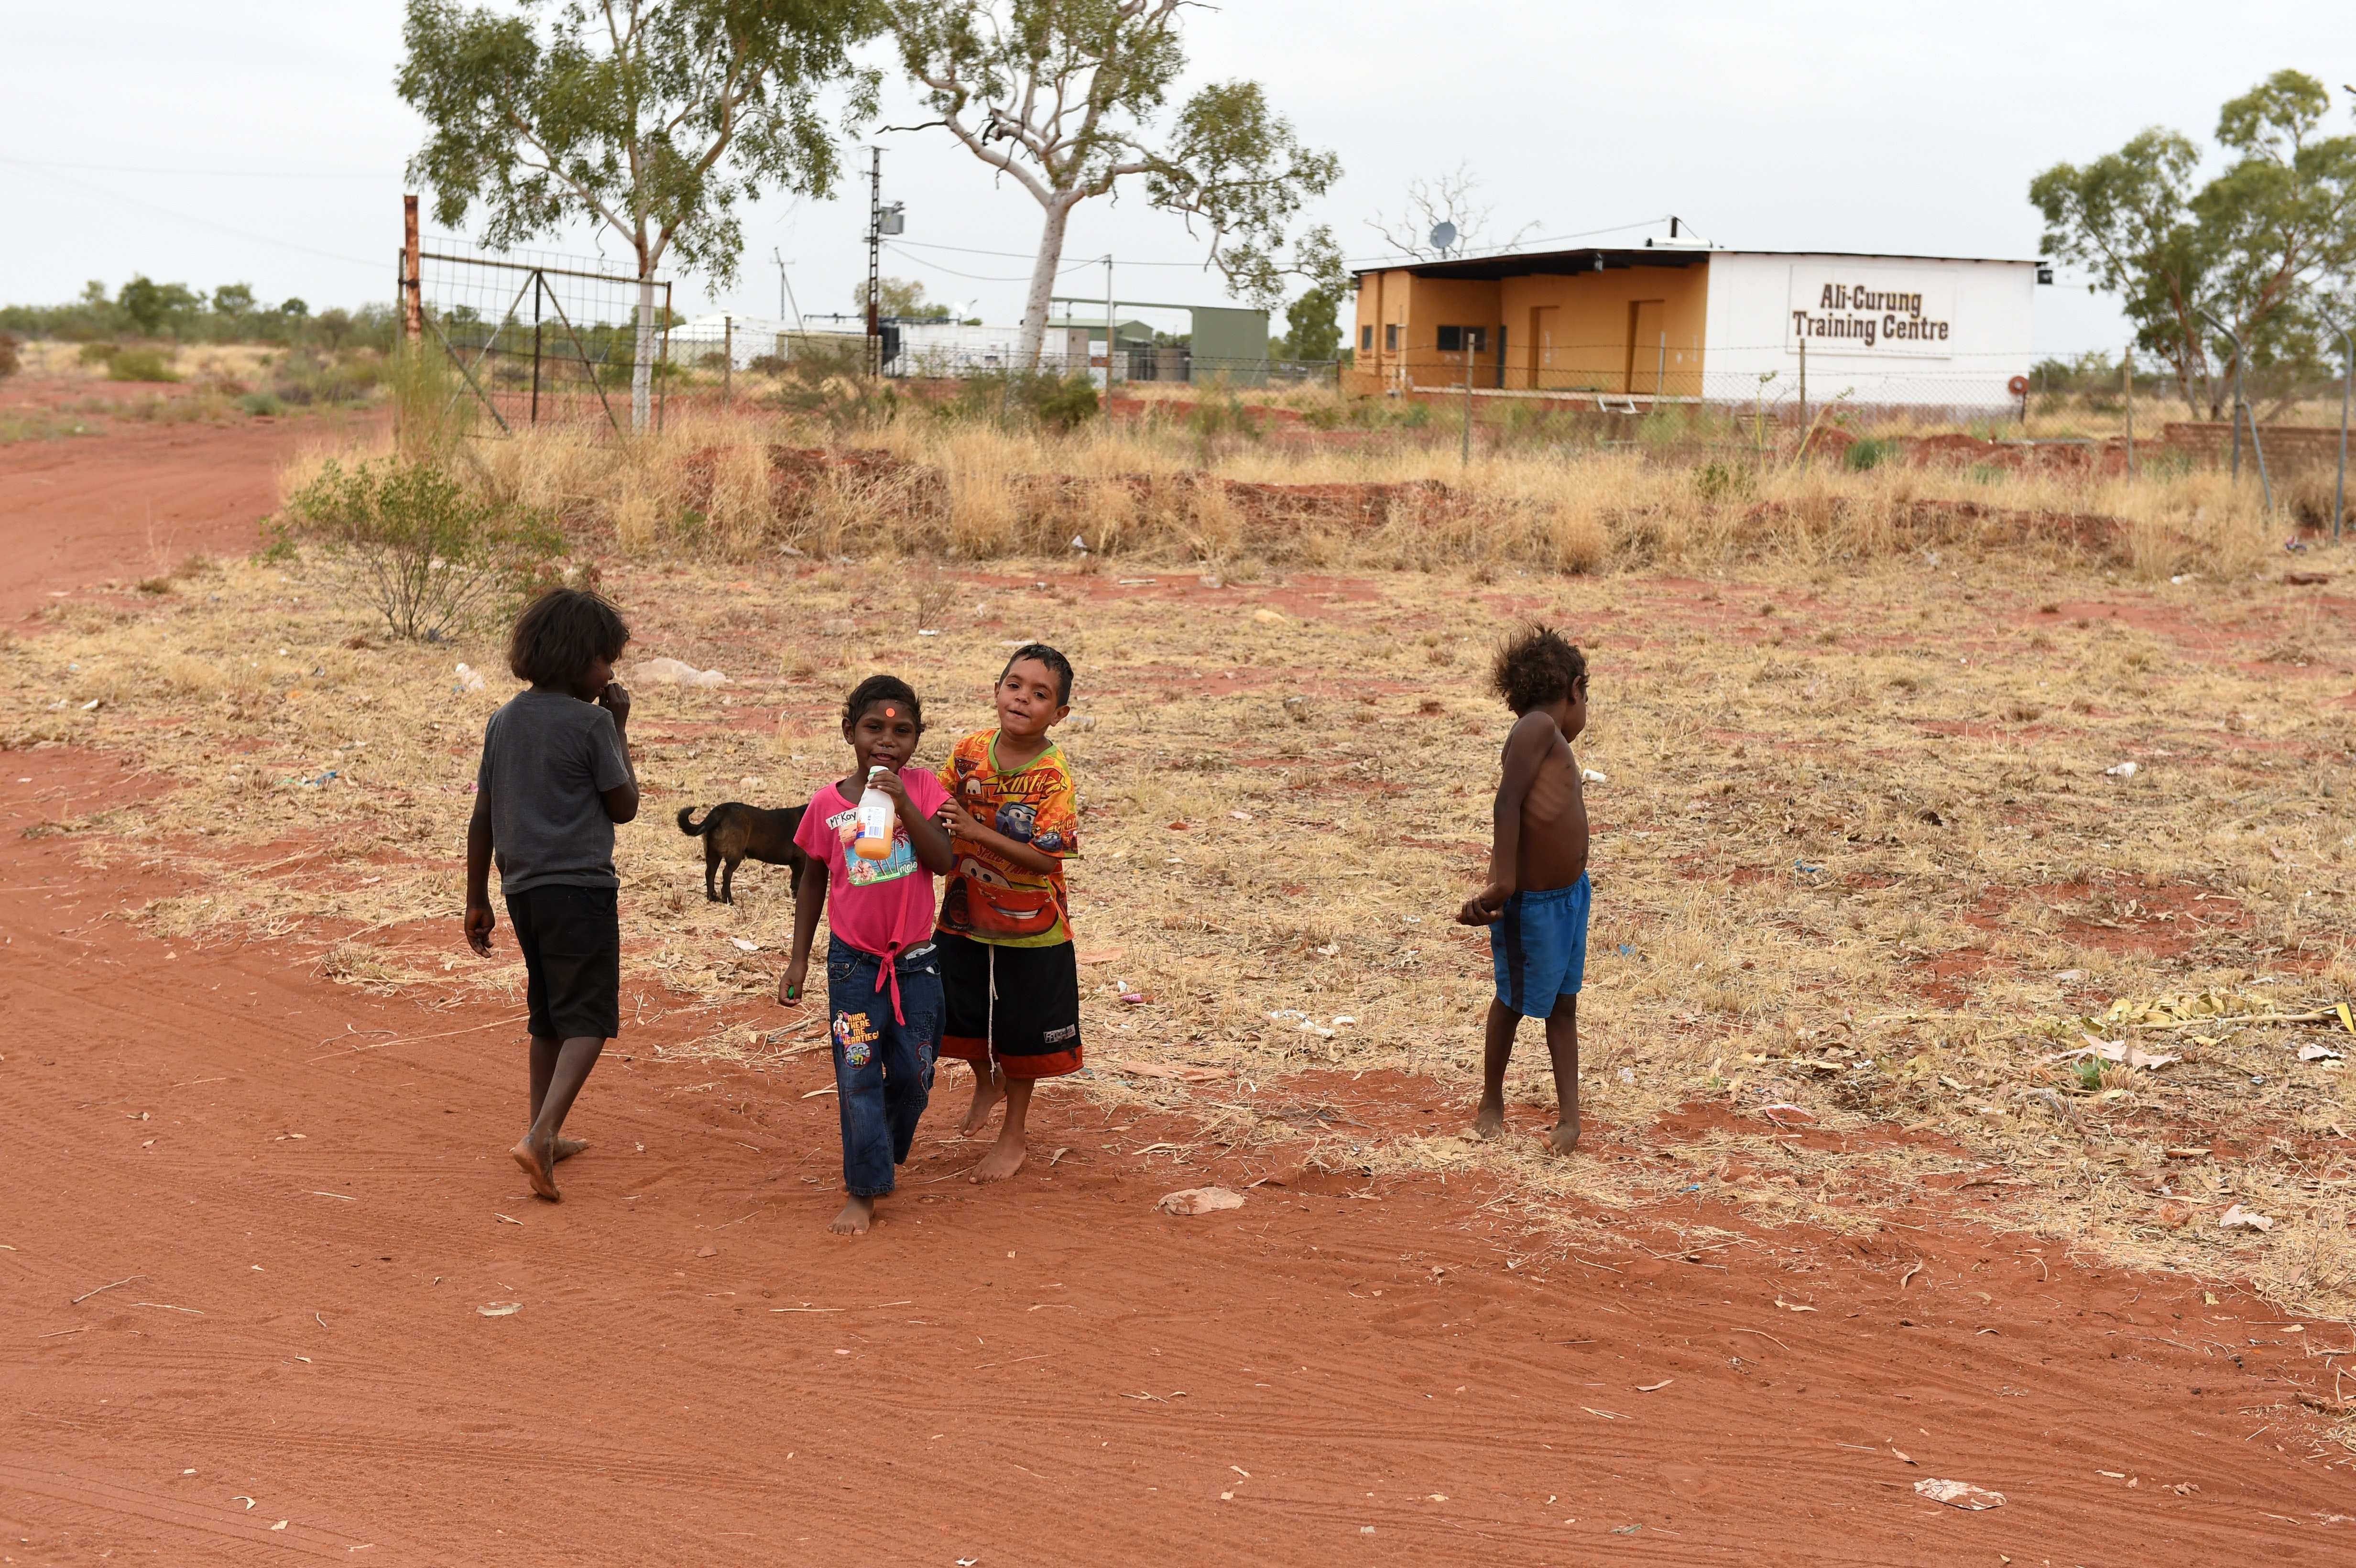 http://theconversation.com/bulging-ear-drums-and-hearing-loss-aboriginal-kids-have-the-highest-otitis-media-rates-in-the-world-64165